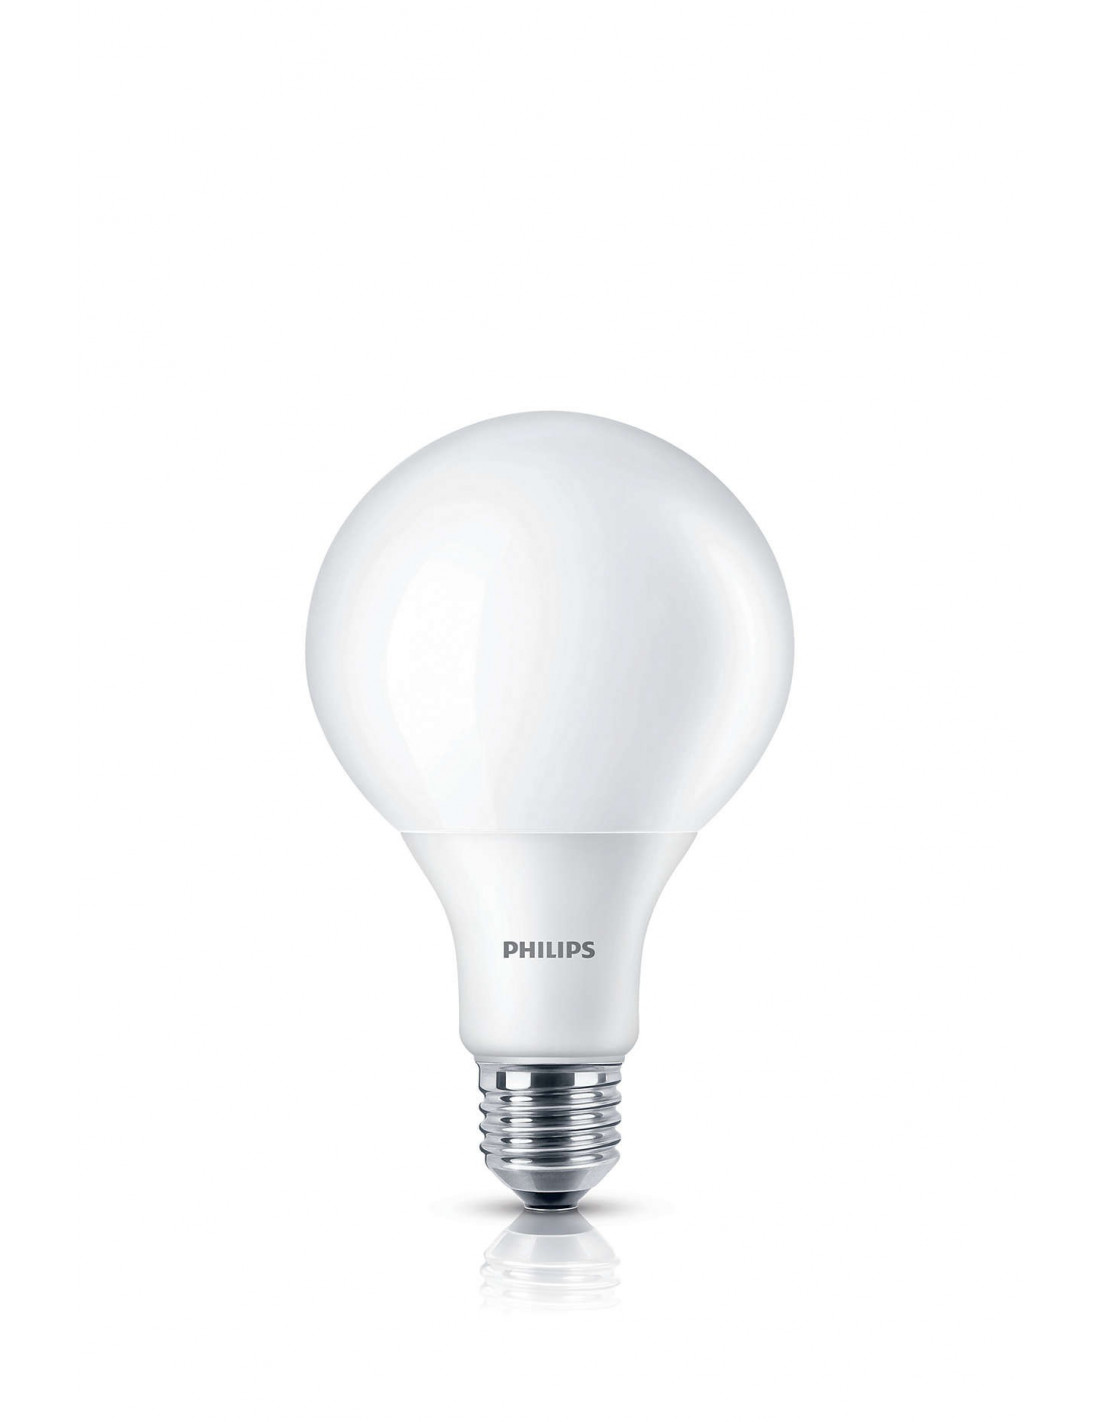 philips ampoule led globe blanc chaud 9 5w 60w culot e27 hyper brico. Black Bedroom Furniture Sets. Home Design Ideas